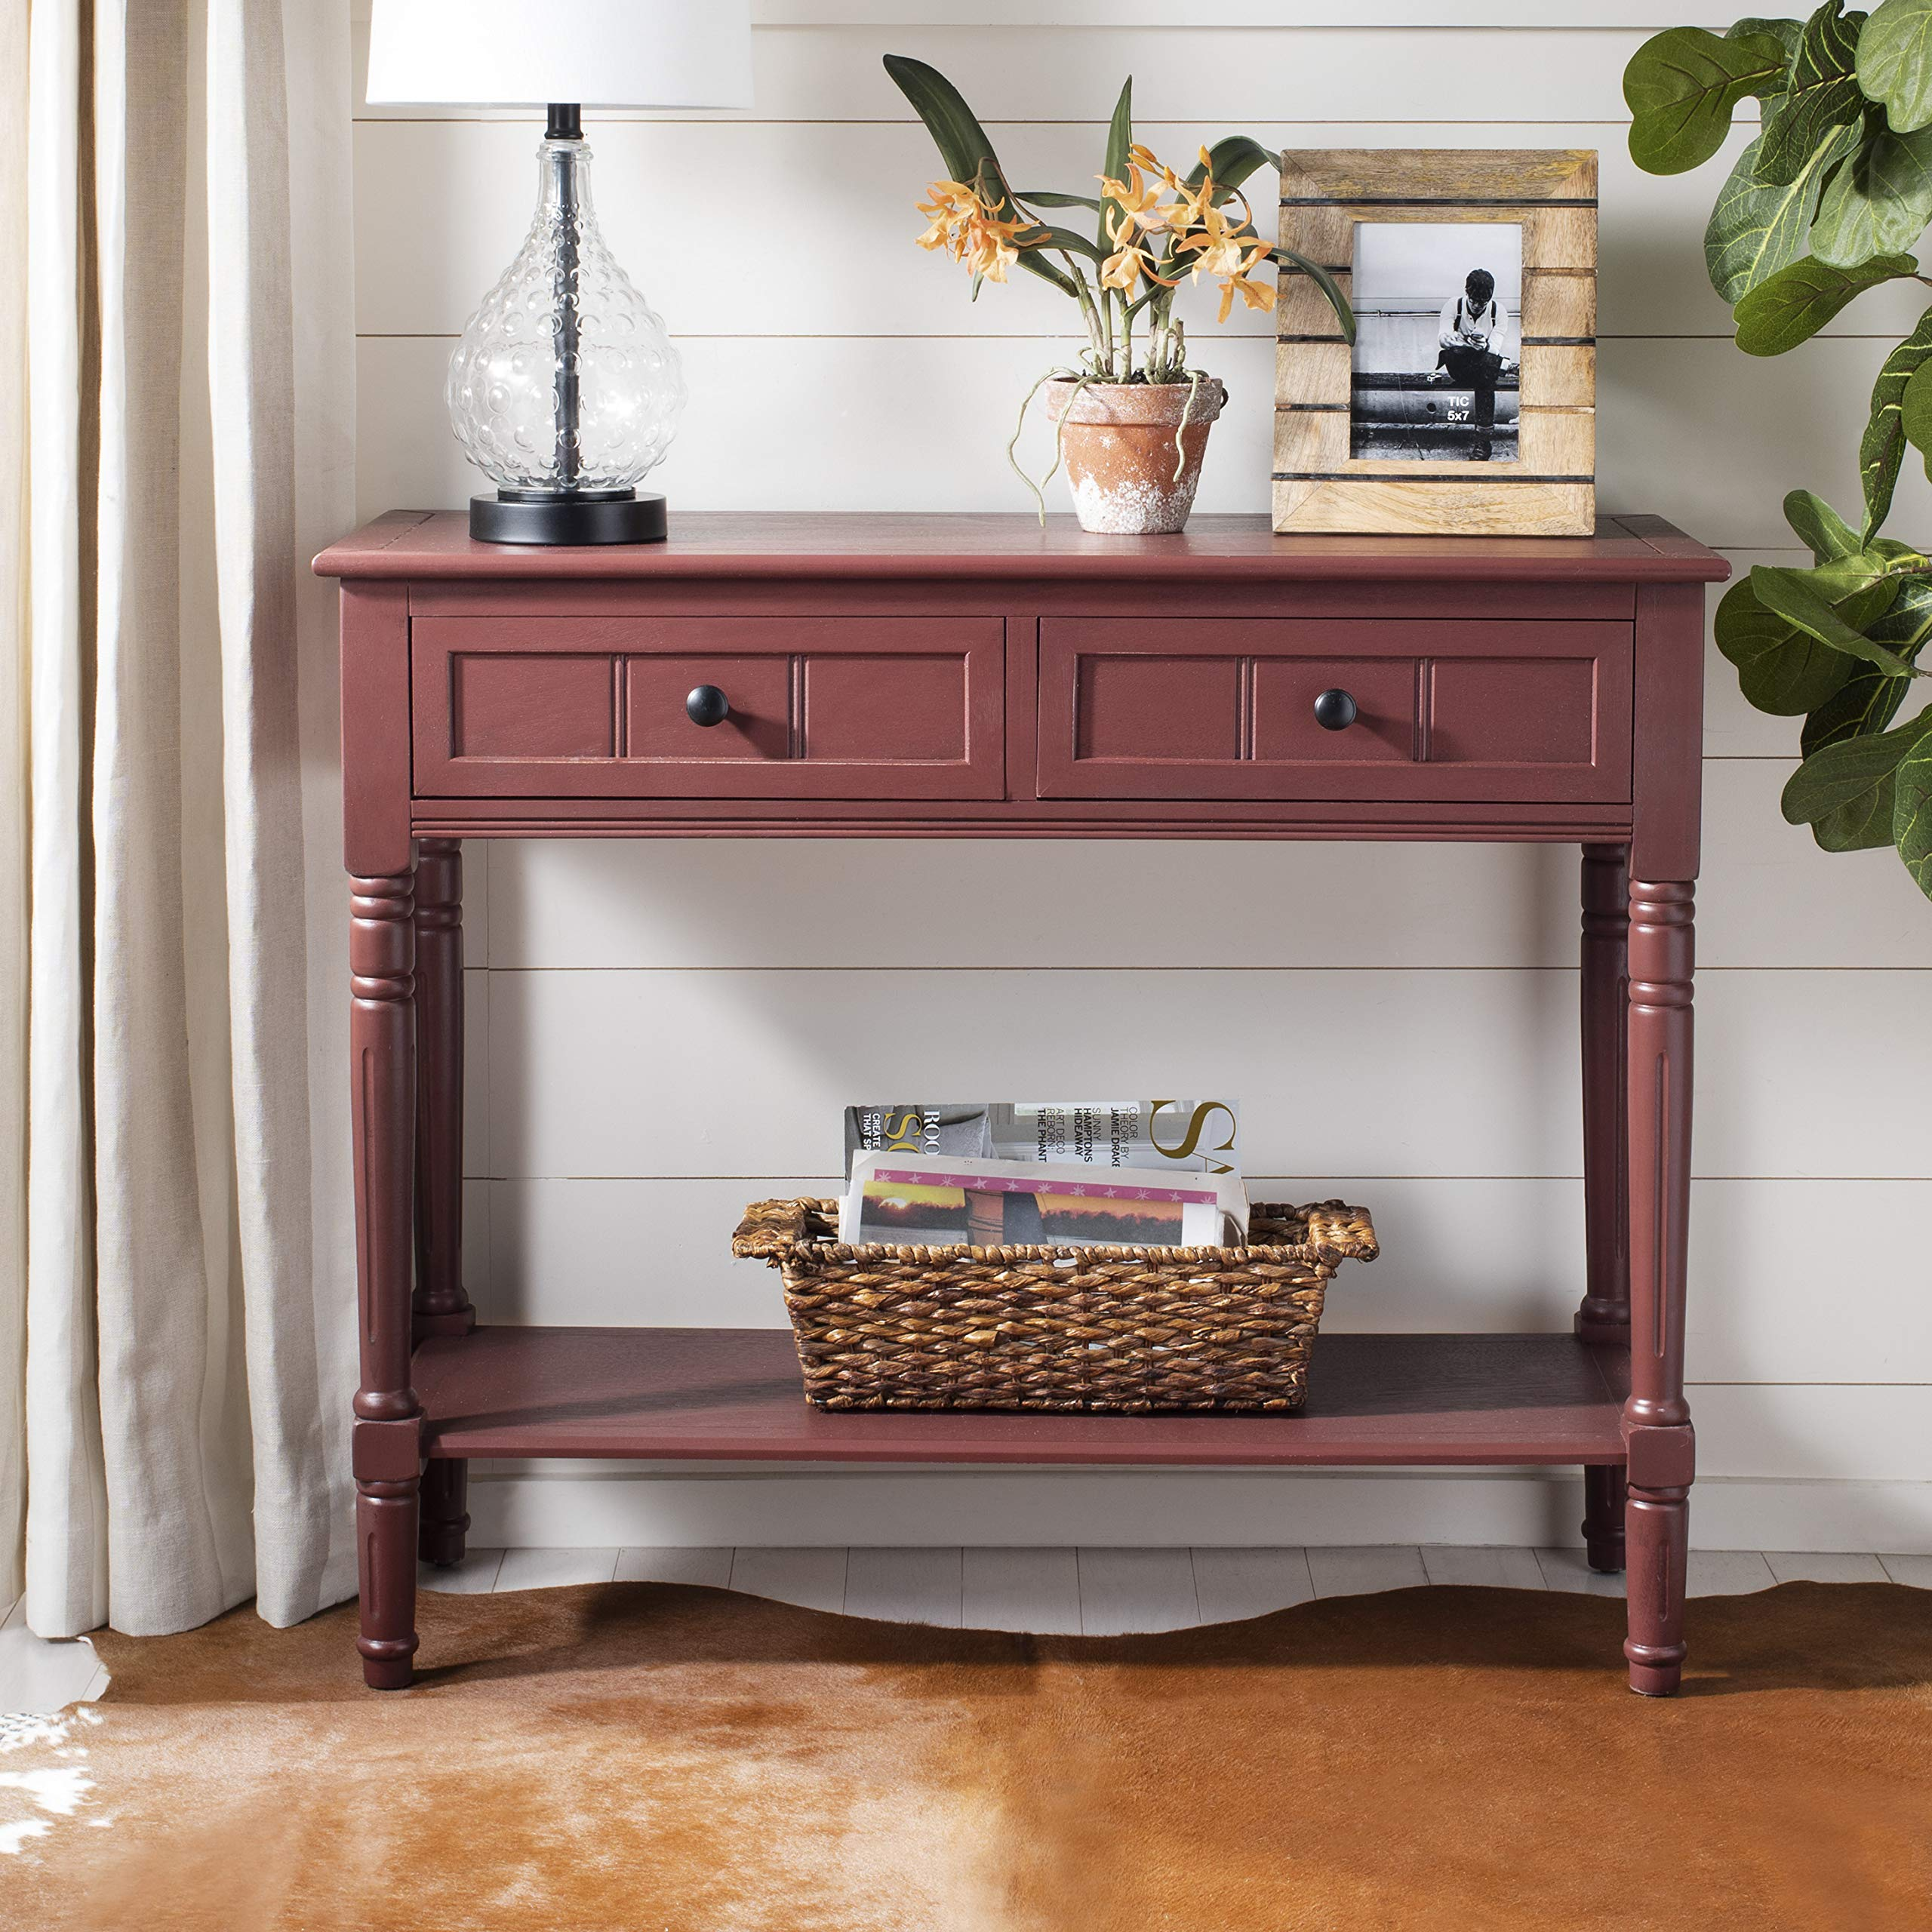 Safavieh American Homes Collection Samantha Red 2-Drawer Console Table by Safavieh